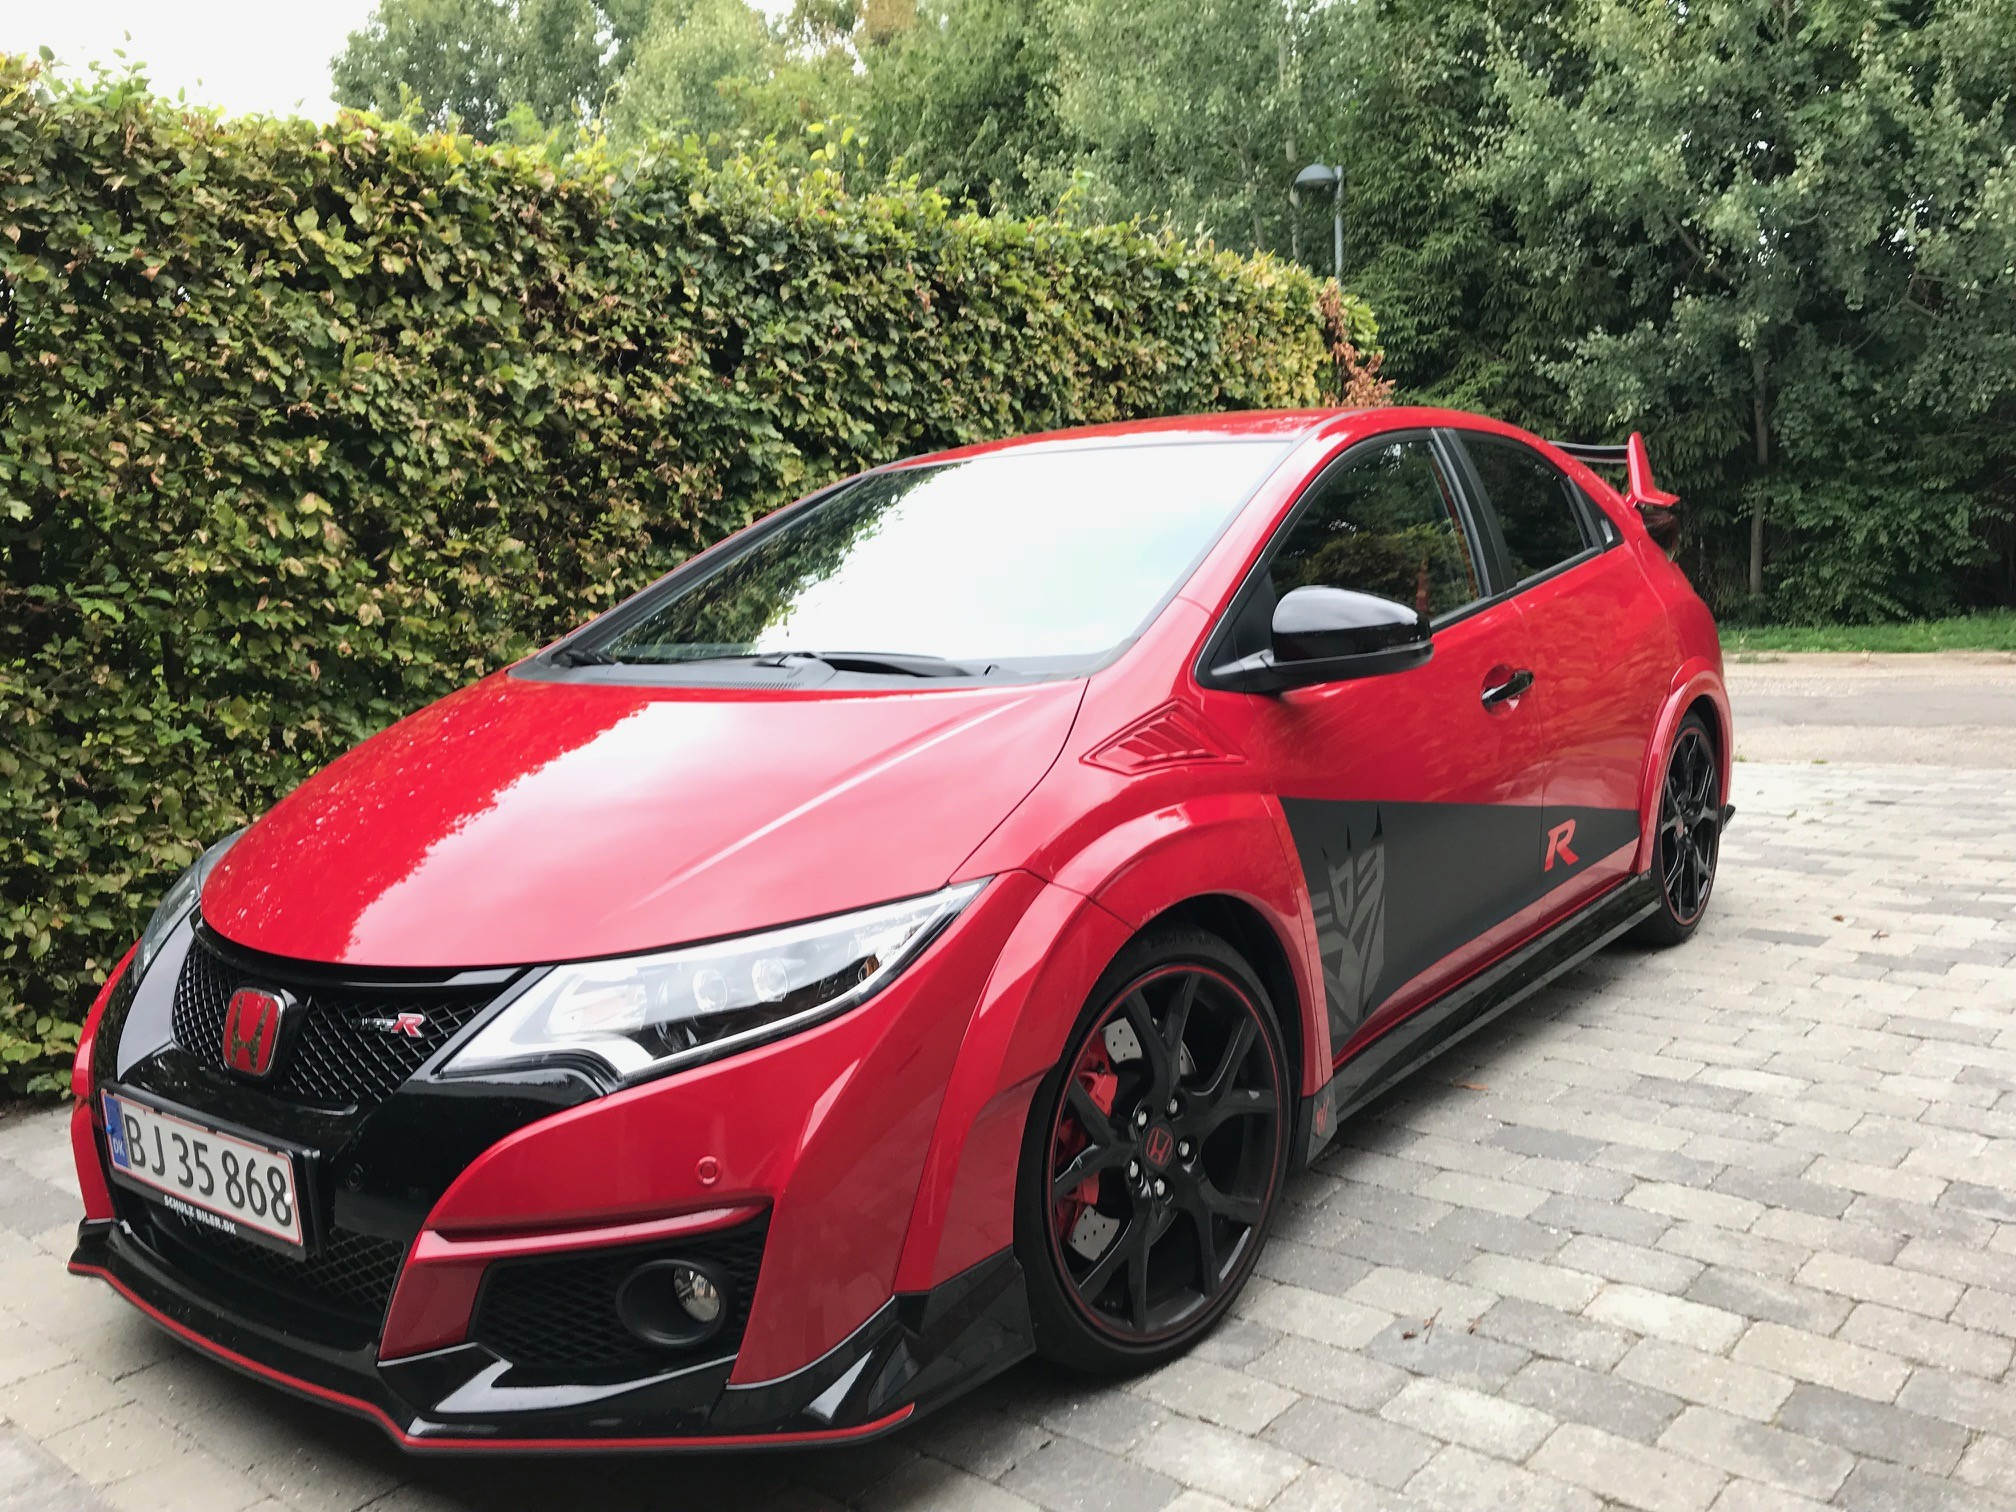 Civic Type R foran